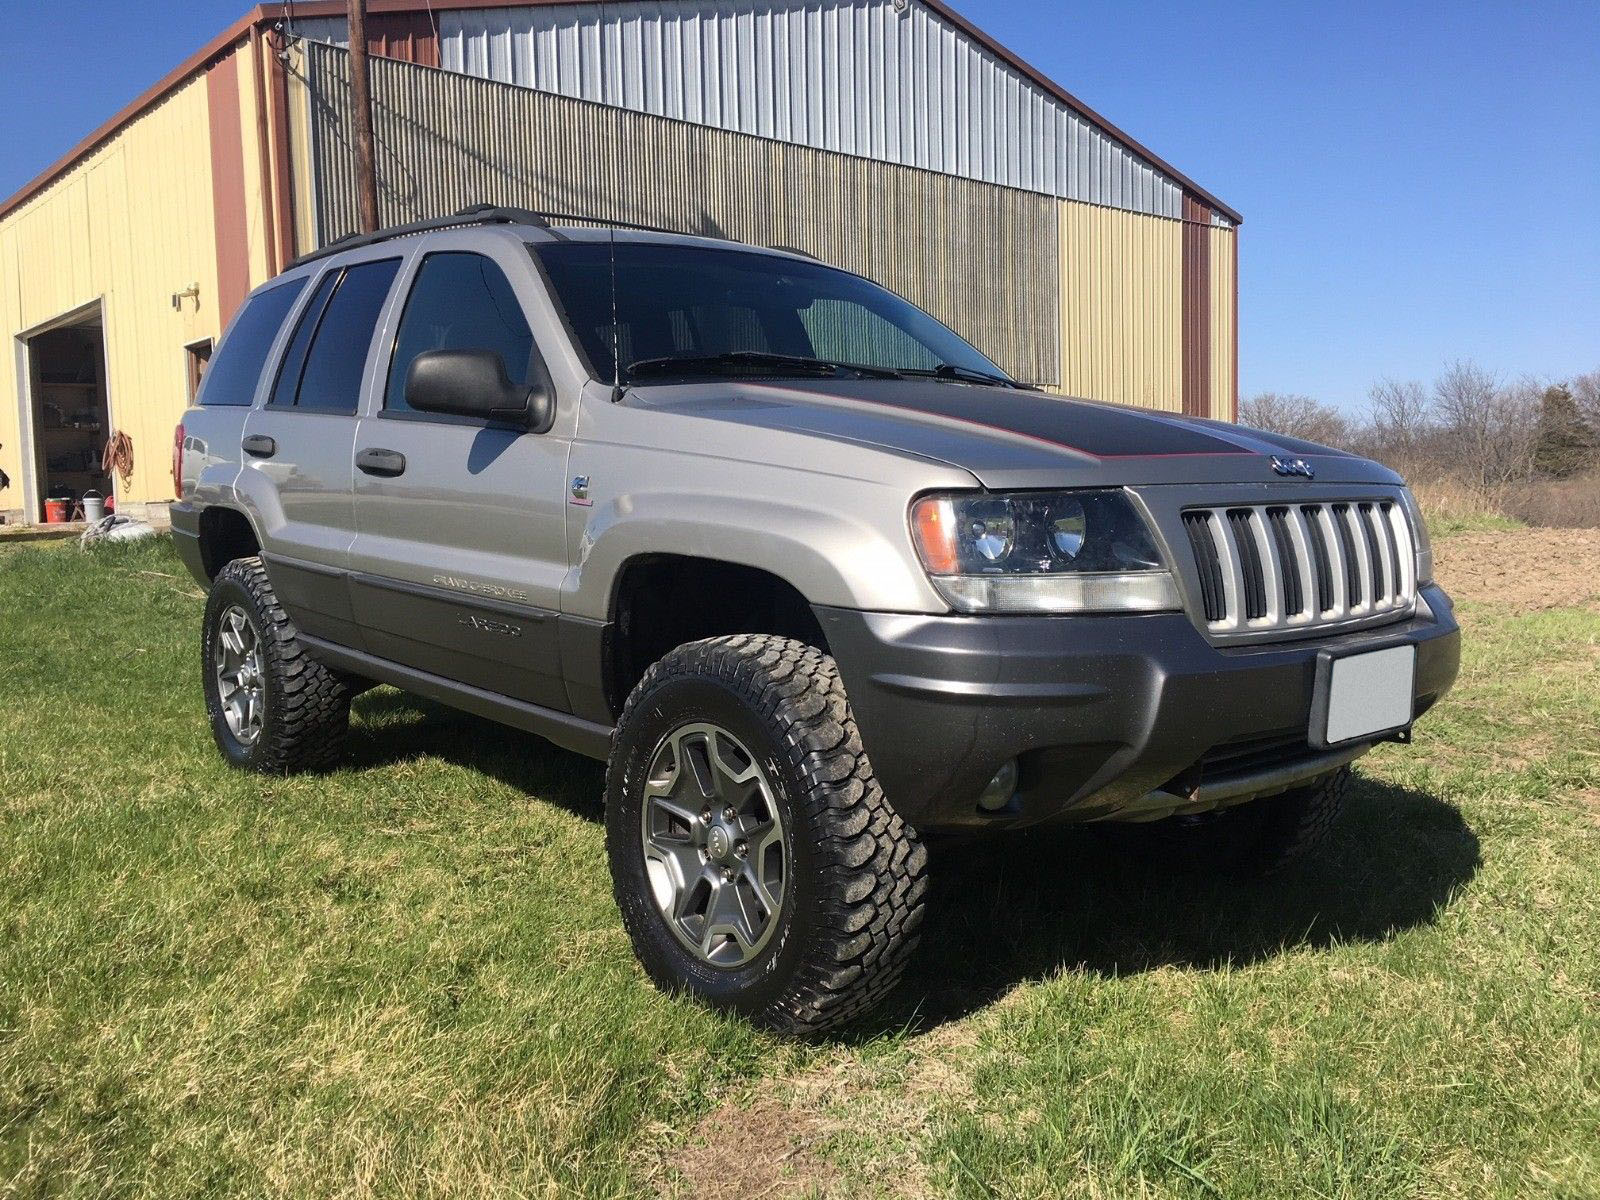 for sale 2001 grand cherokee with a cummins b3 3 turbo diesel. Black Bedroom Furniture Sets. Home Design Ideas